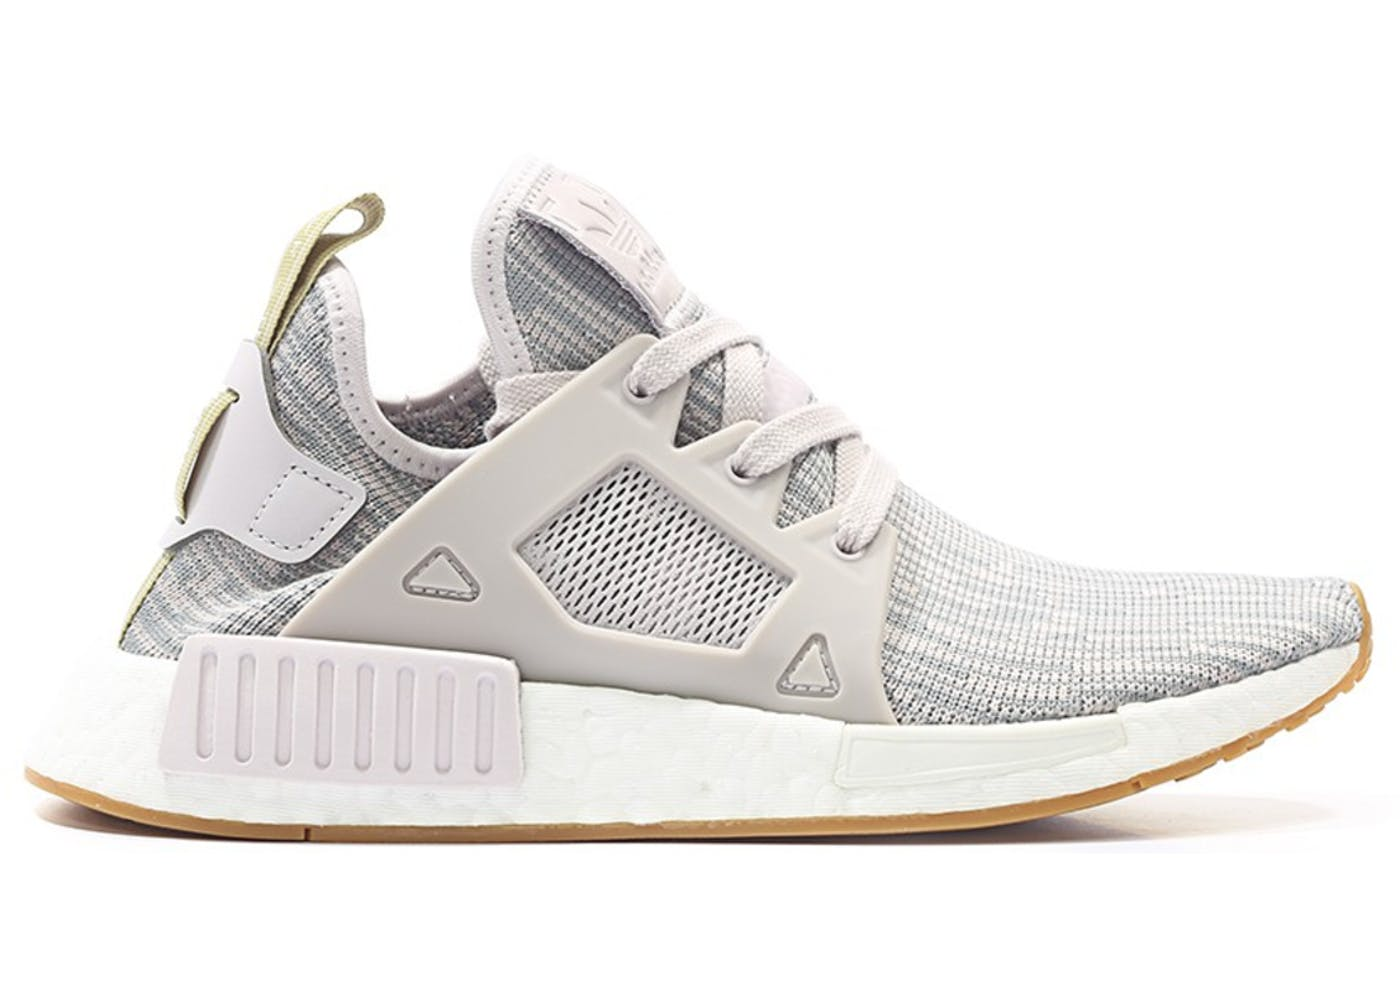 124a5d90996bc Adidas Nmd XR1 Deep Burgundy BB2368 Adidas Yeezy Boost UK